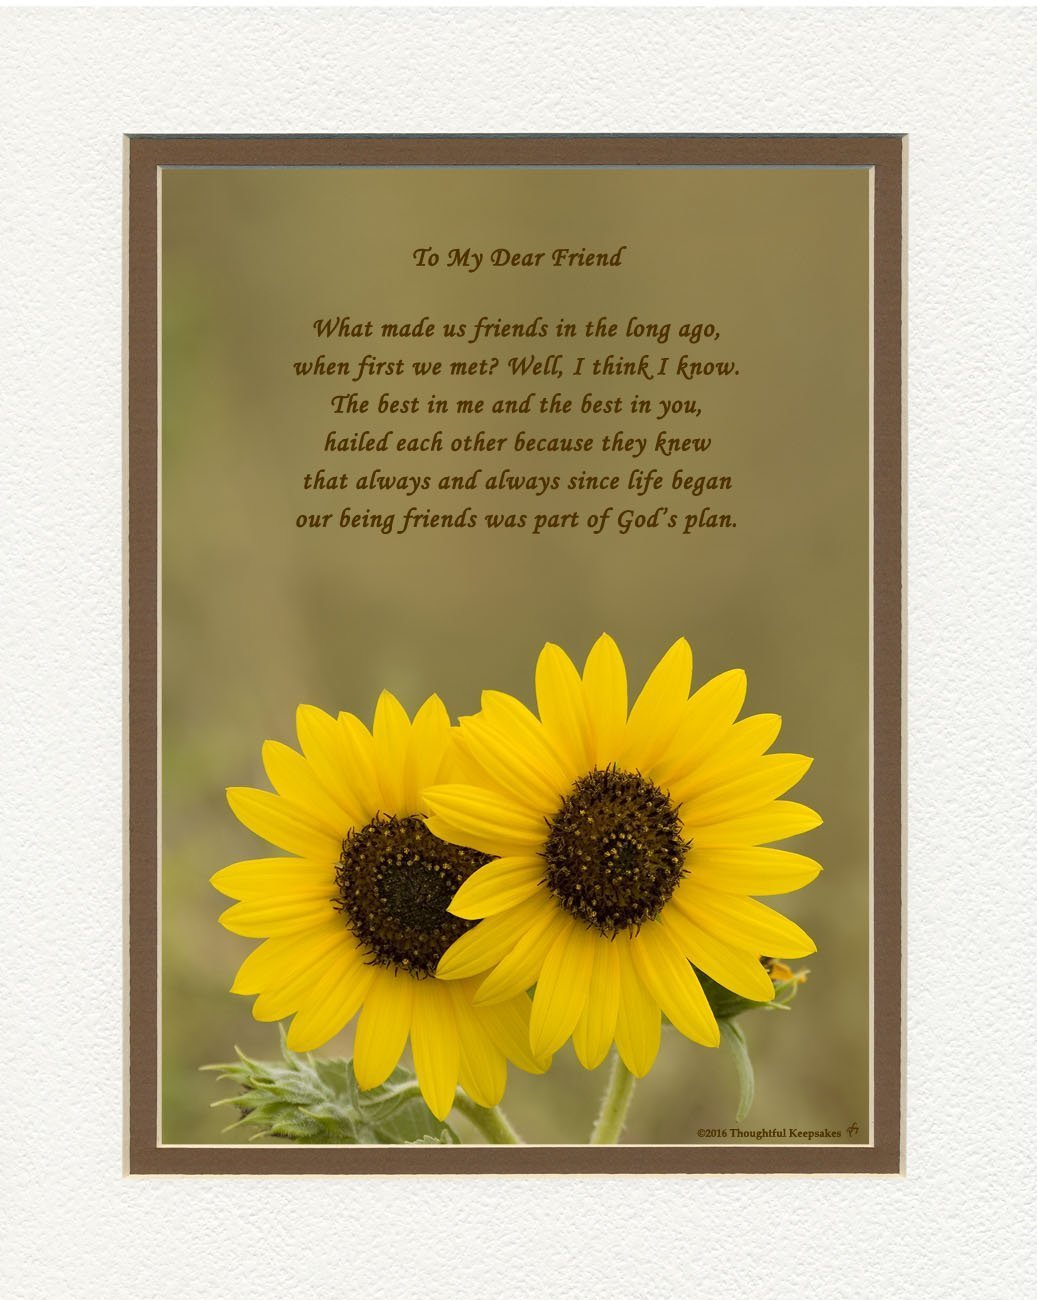 Amazon.com: Special Friend Gift. Sunflowers Photo with \